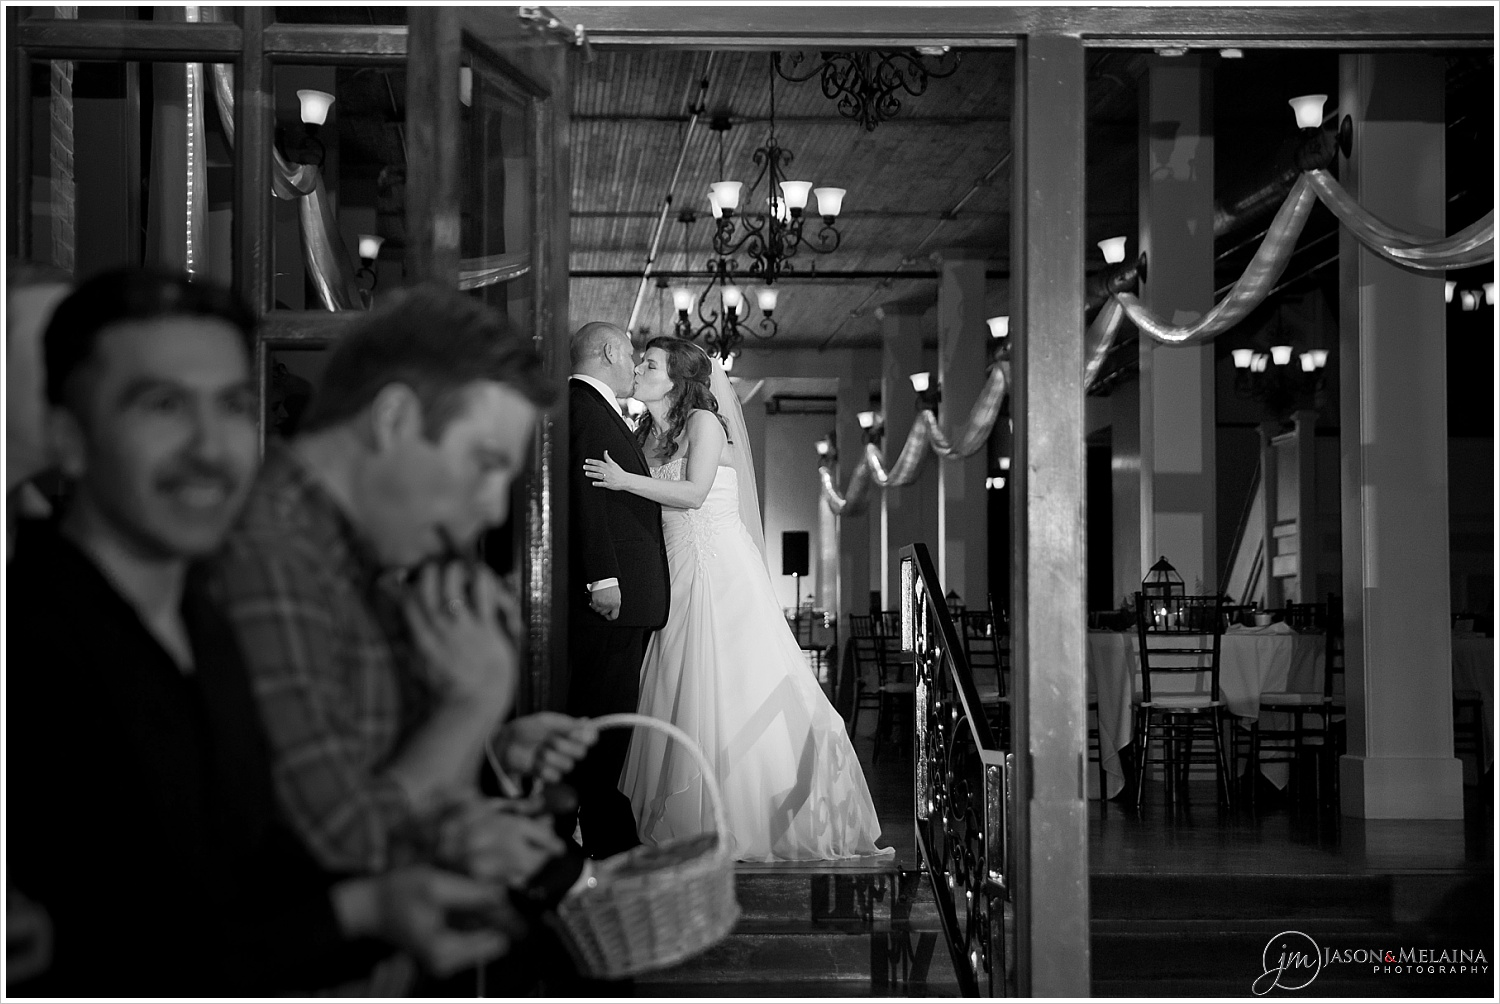 Bride and groom kiss before leaving their reception, The Palladium, Waco, Texas